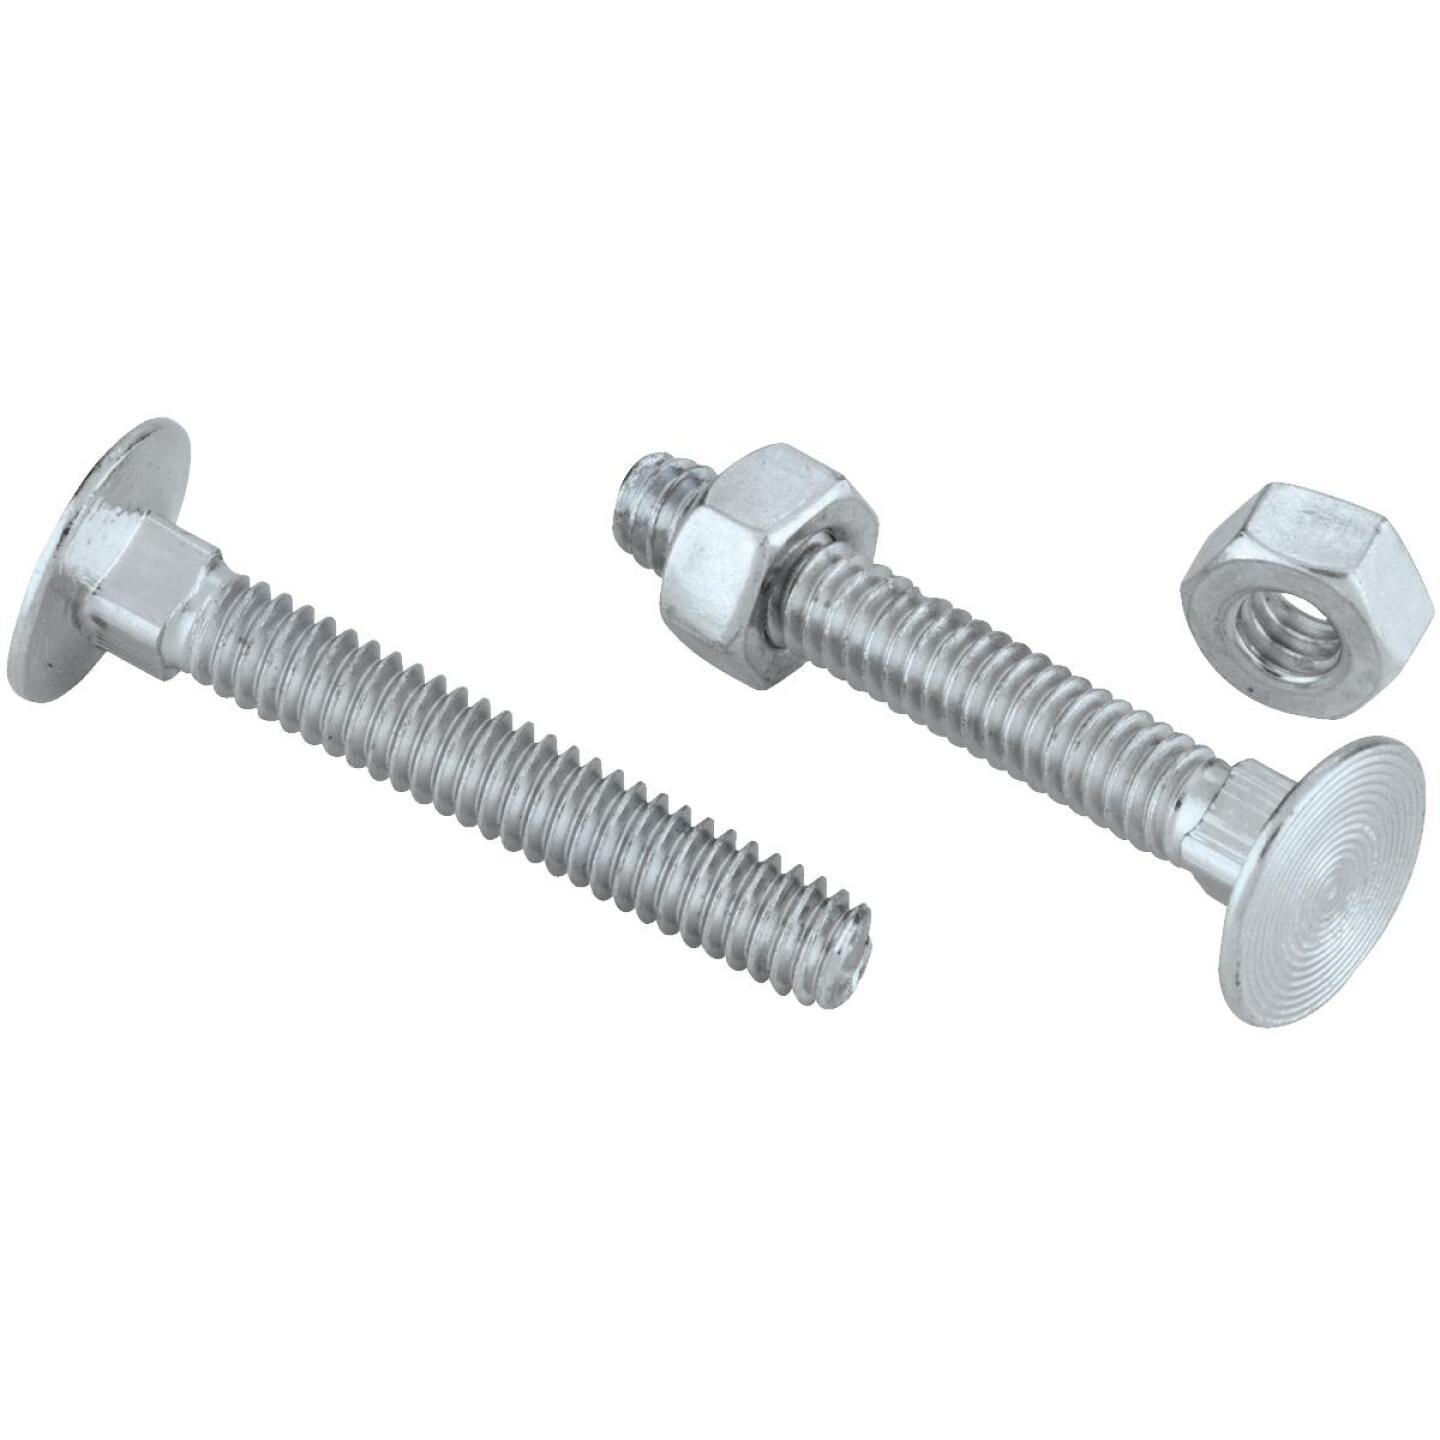 National 1/4 In. x 1-3/4 In. Zinc Carriage Bolt (12 Ct.) Image 3